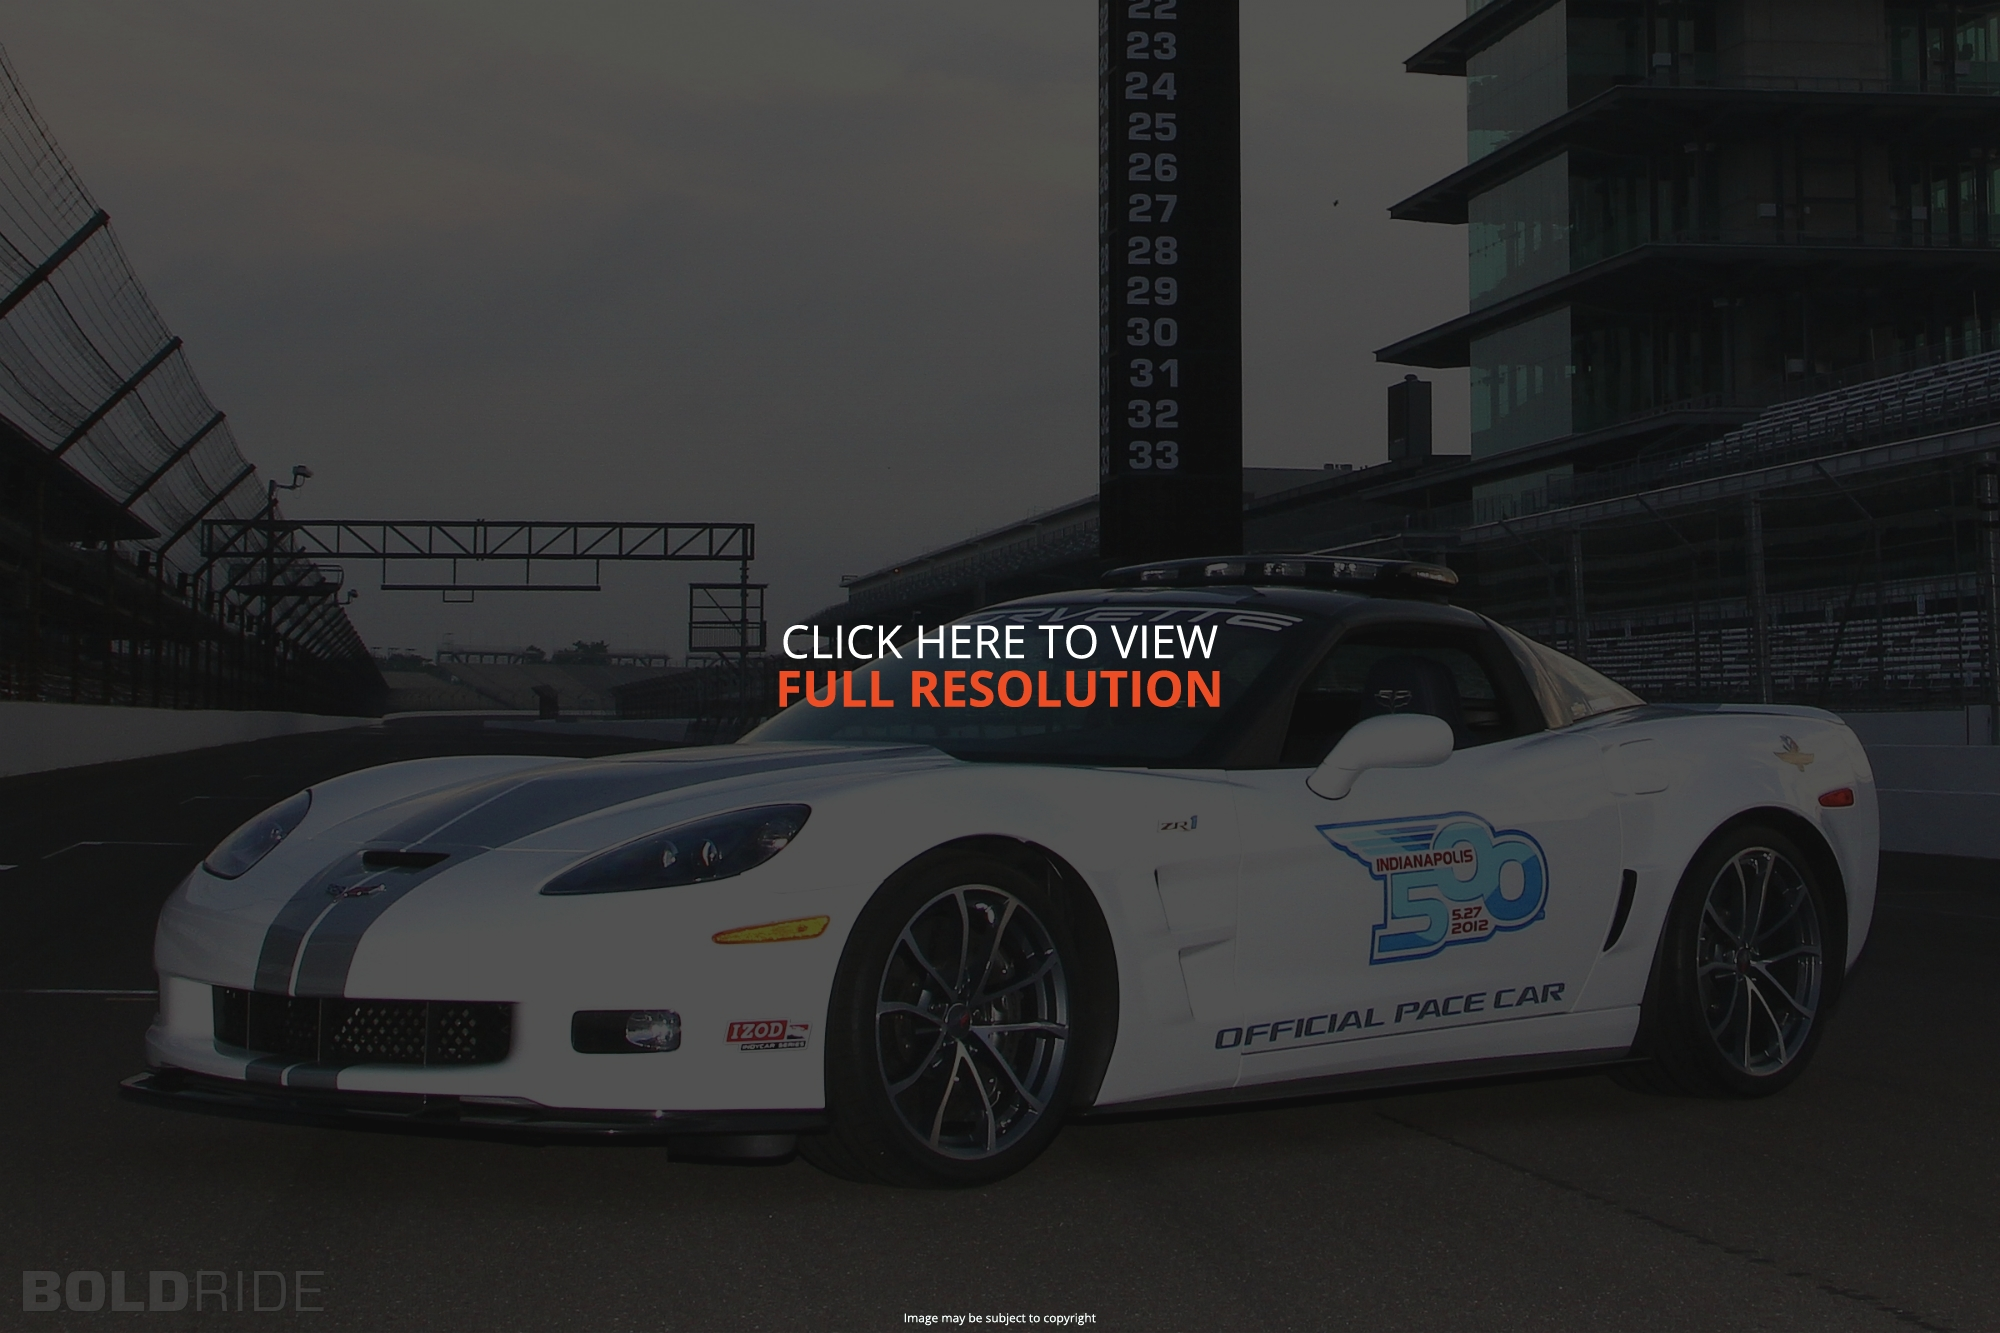 Chevrolet Corvette Indy Pace Car Edition #41